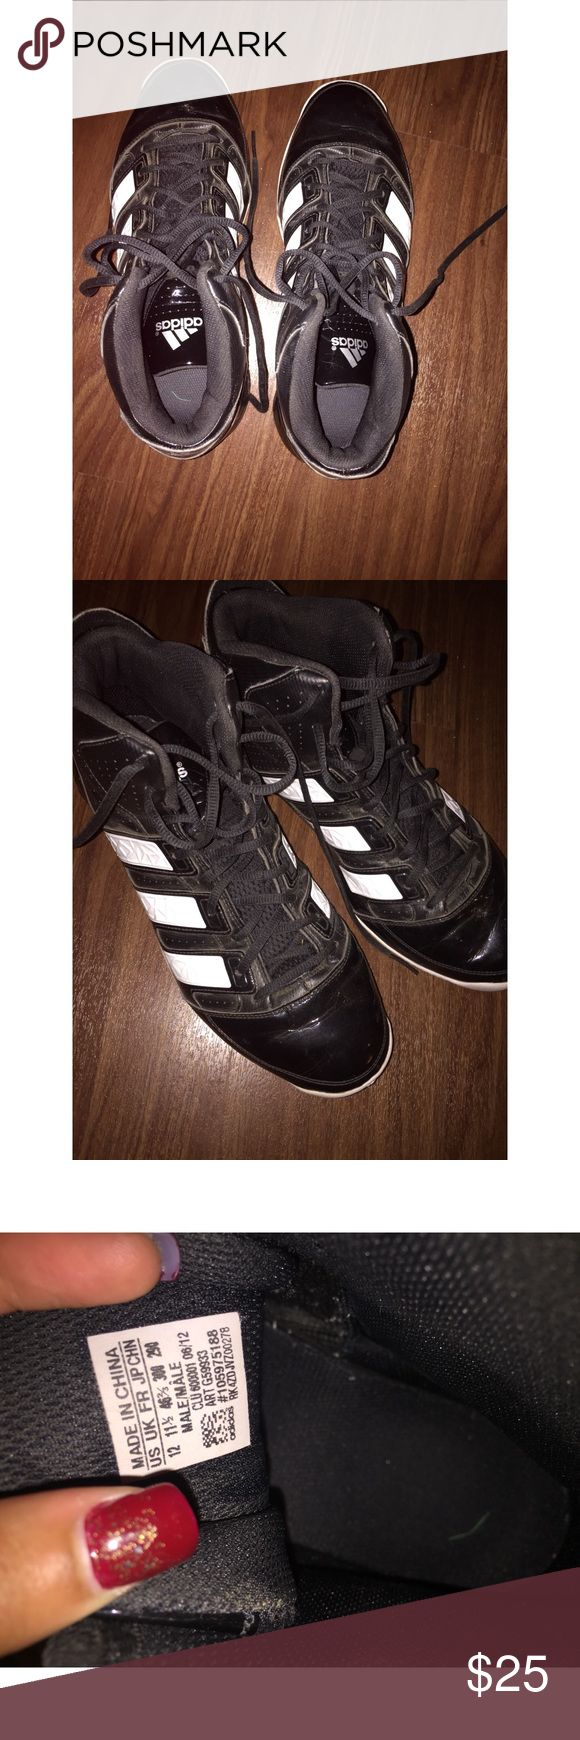 Athletic shoes Athletic & love to play some basket ball ? SCORE these comfortable babies! You will not be sorry (: adidas Shoes Athletic Shoes